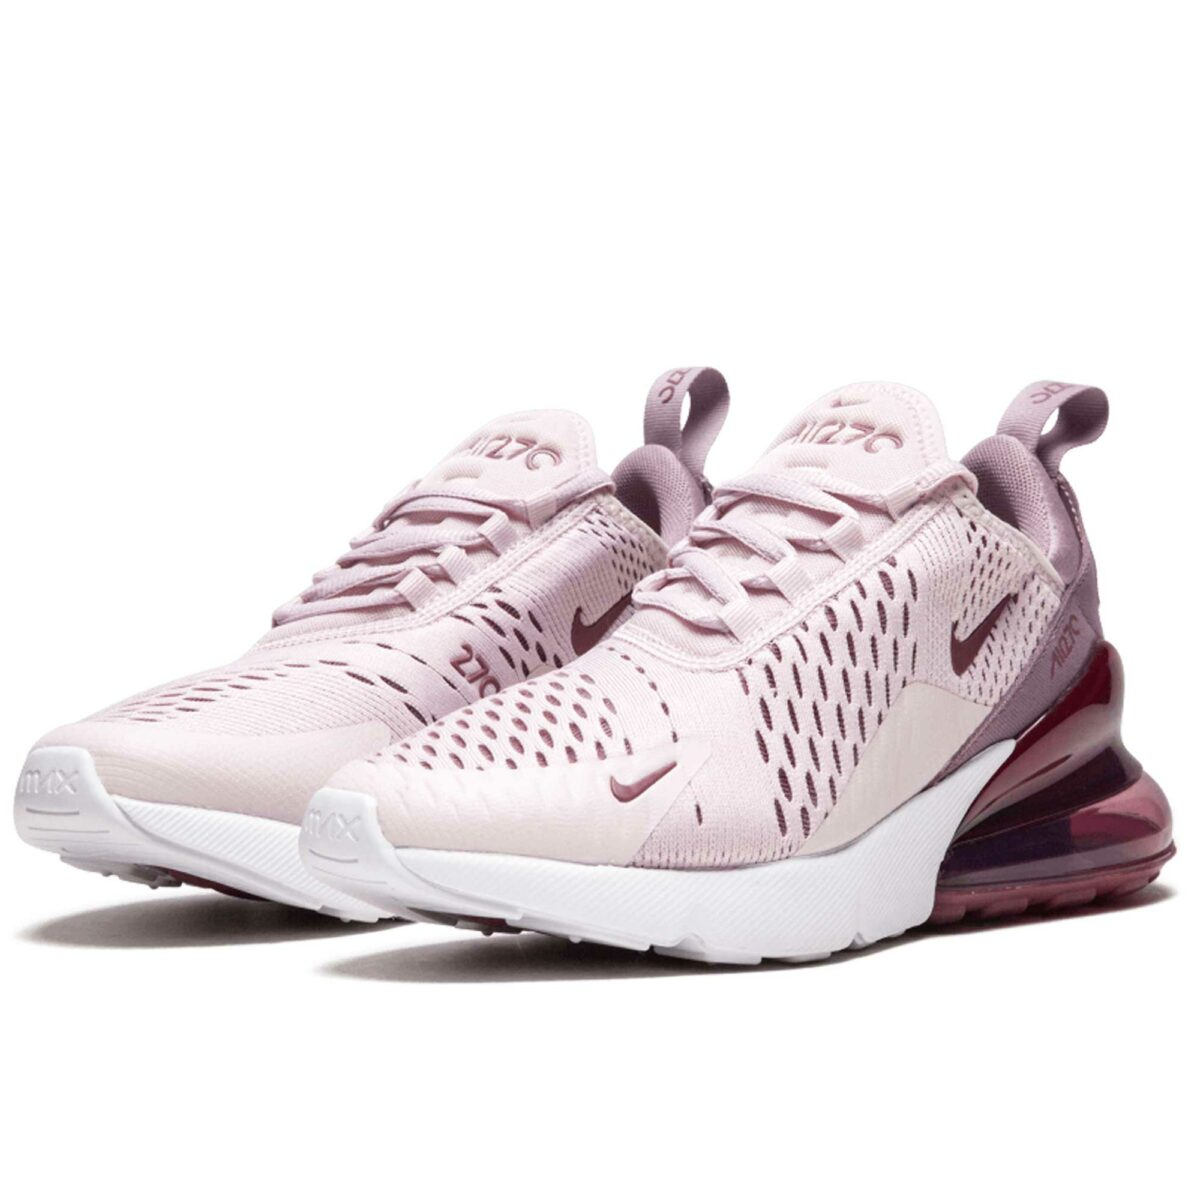 nike air max 270 barely rose ah6789_601 купить